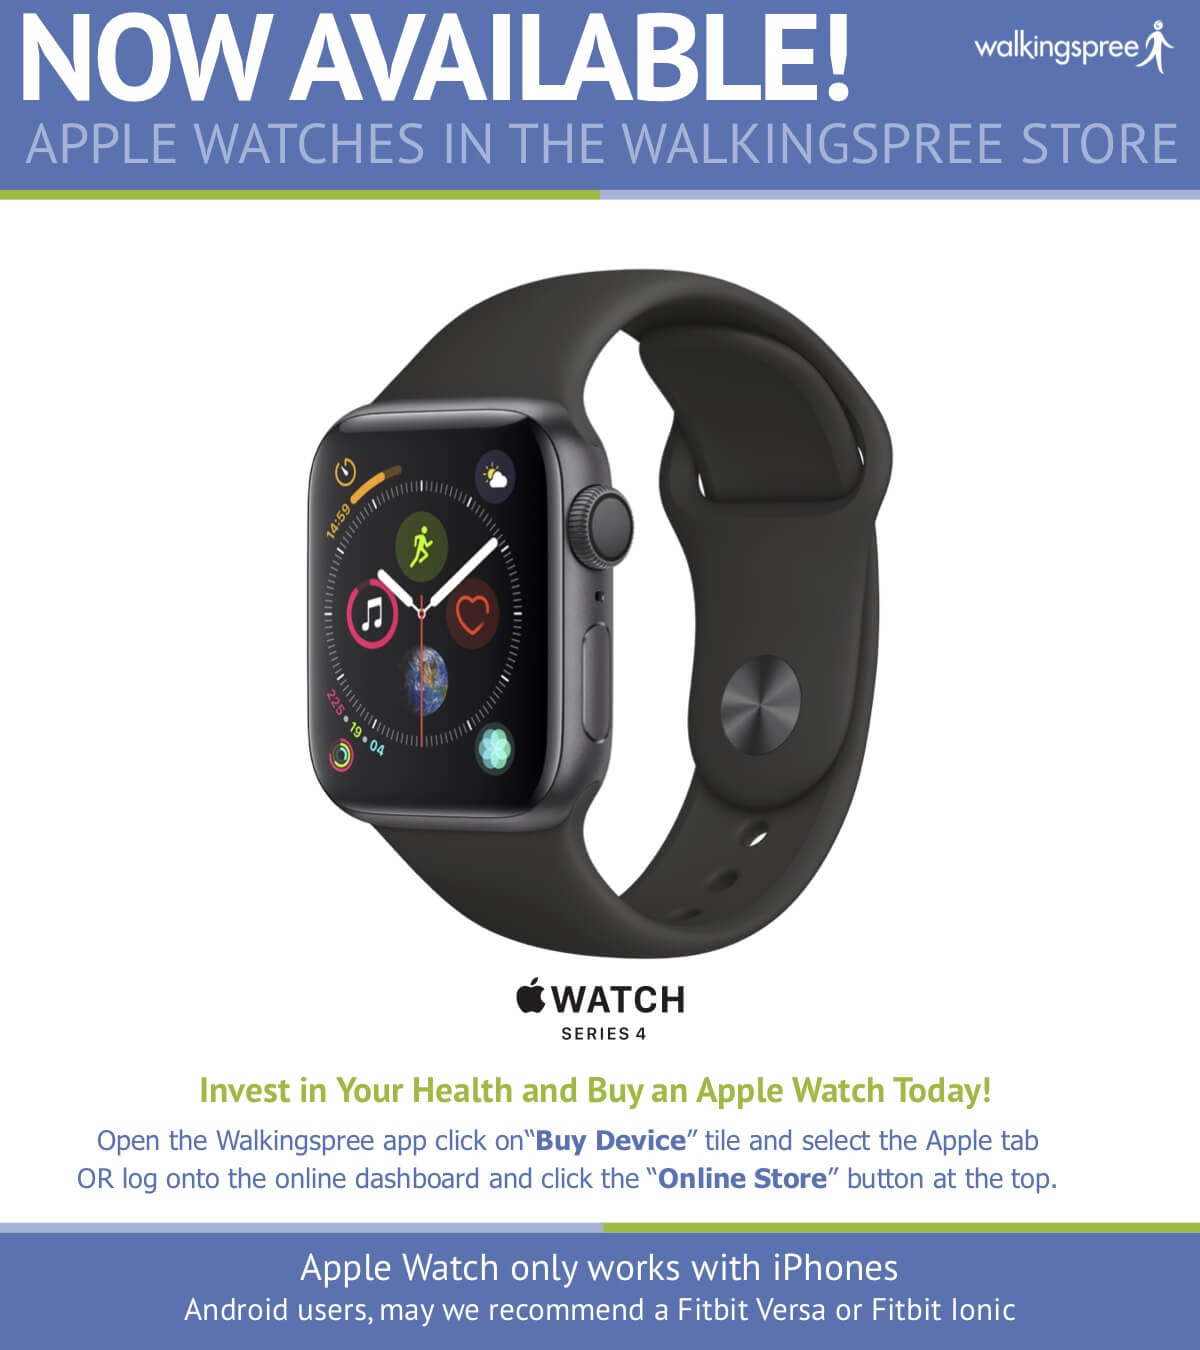 Apple Watches Now Available!